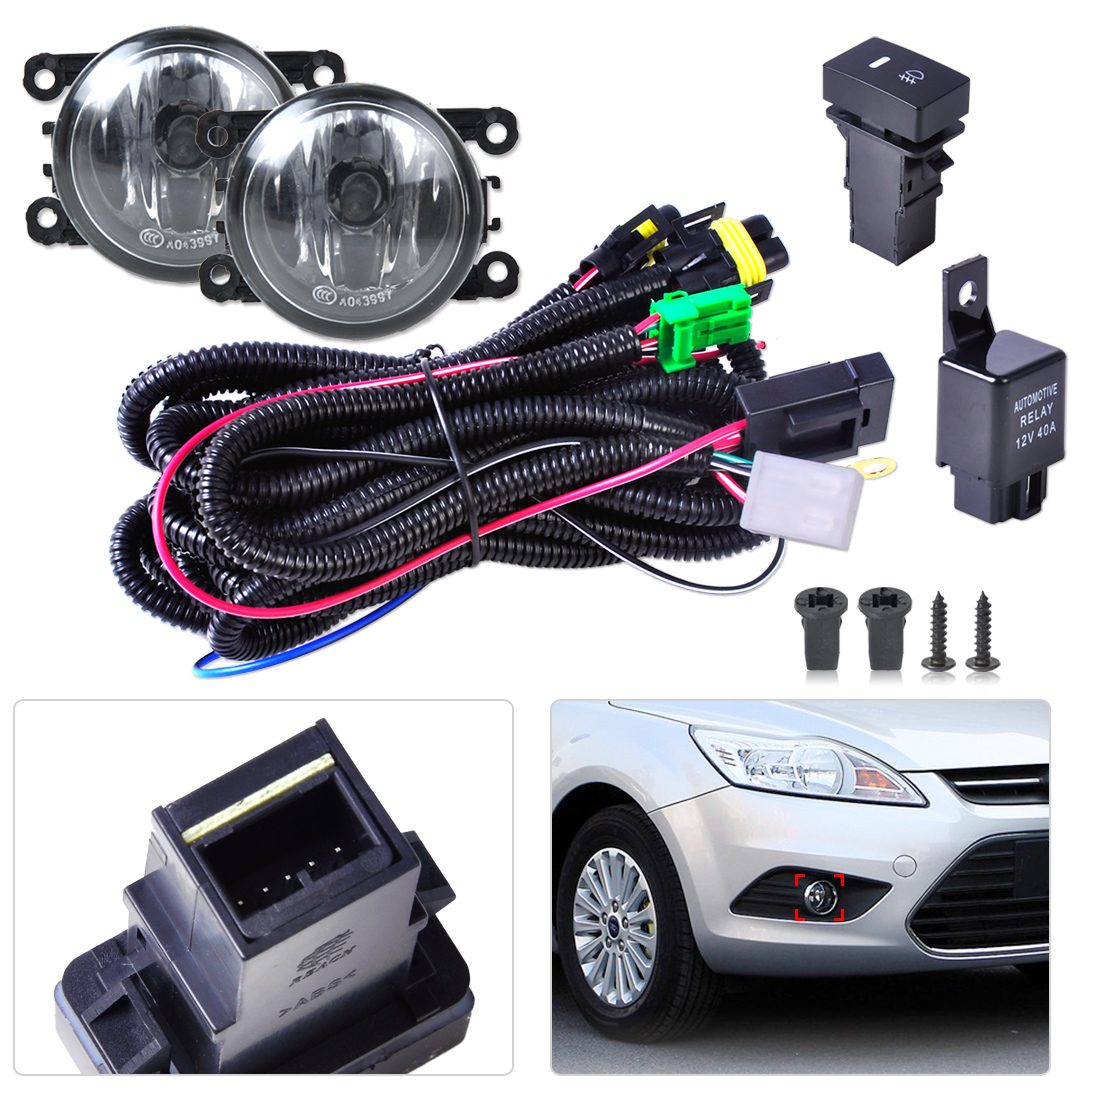 black new wiring harness sockets switch 2 fog lights h11 l 12v 55w kit for ford mustang